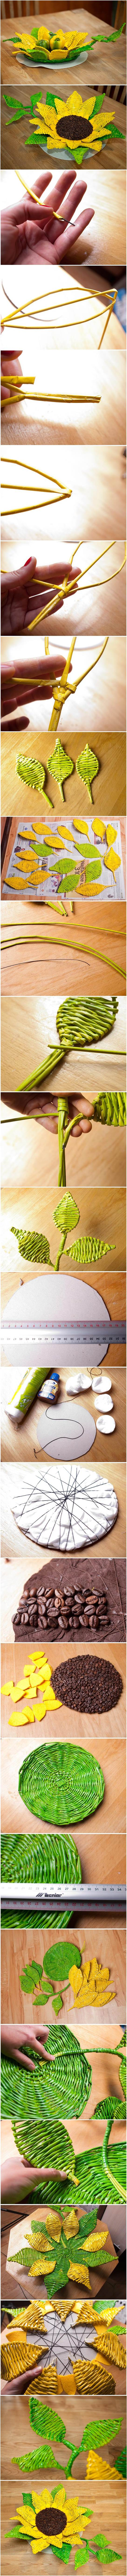 DIY Paper Woven Sunflower Tray 2